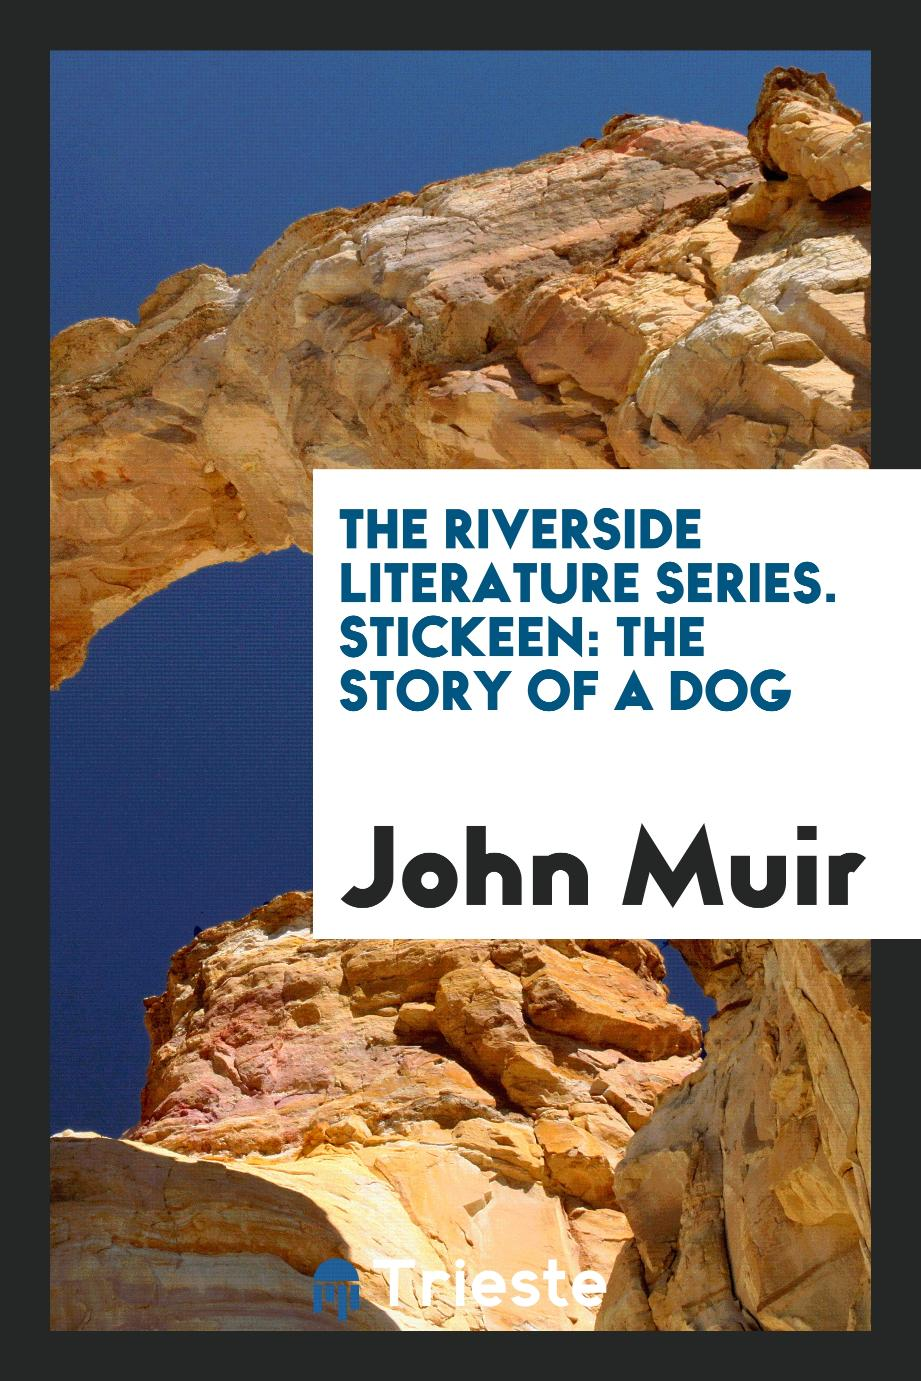 The Riverside Literature Series. Stickeen: The Story of a Dog